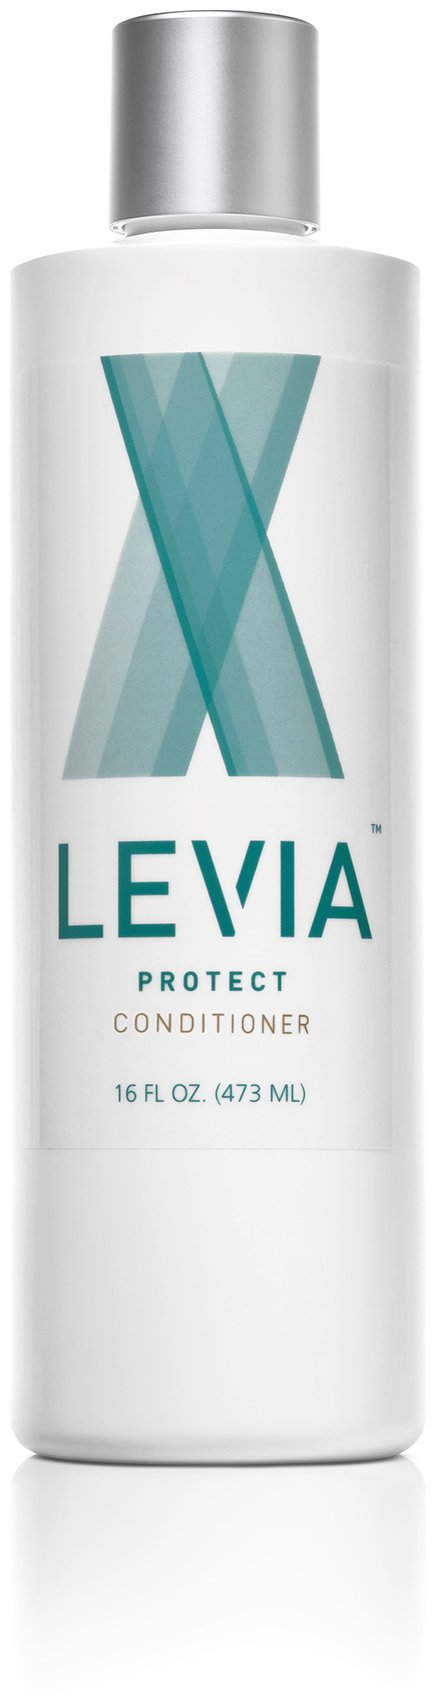 LEVIA Natural Anti-Lice Conditioner, 12oz - REPELS UP TO 100% OF LICE! Infused with Tea Tree, Rosemary, Neem, Aloe, Argan, Myrrh & Bilberry. Creates natural lice barrier around your head. Made in USA